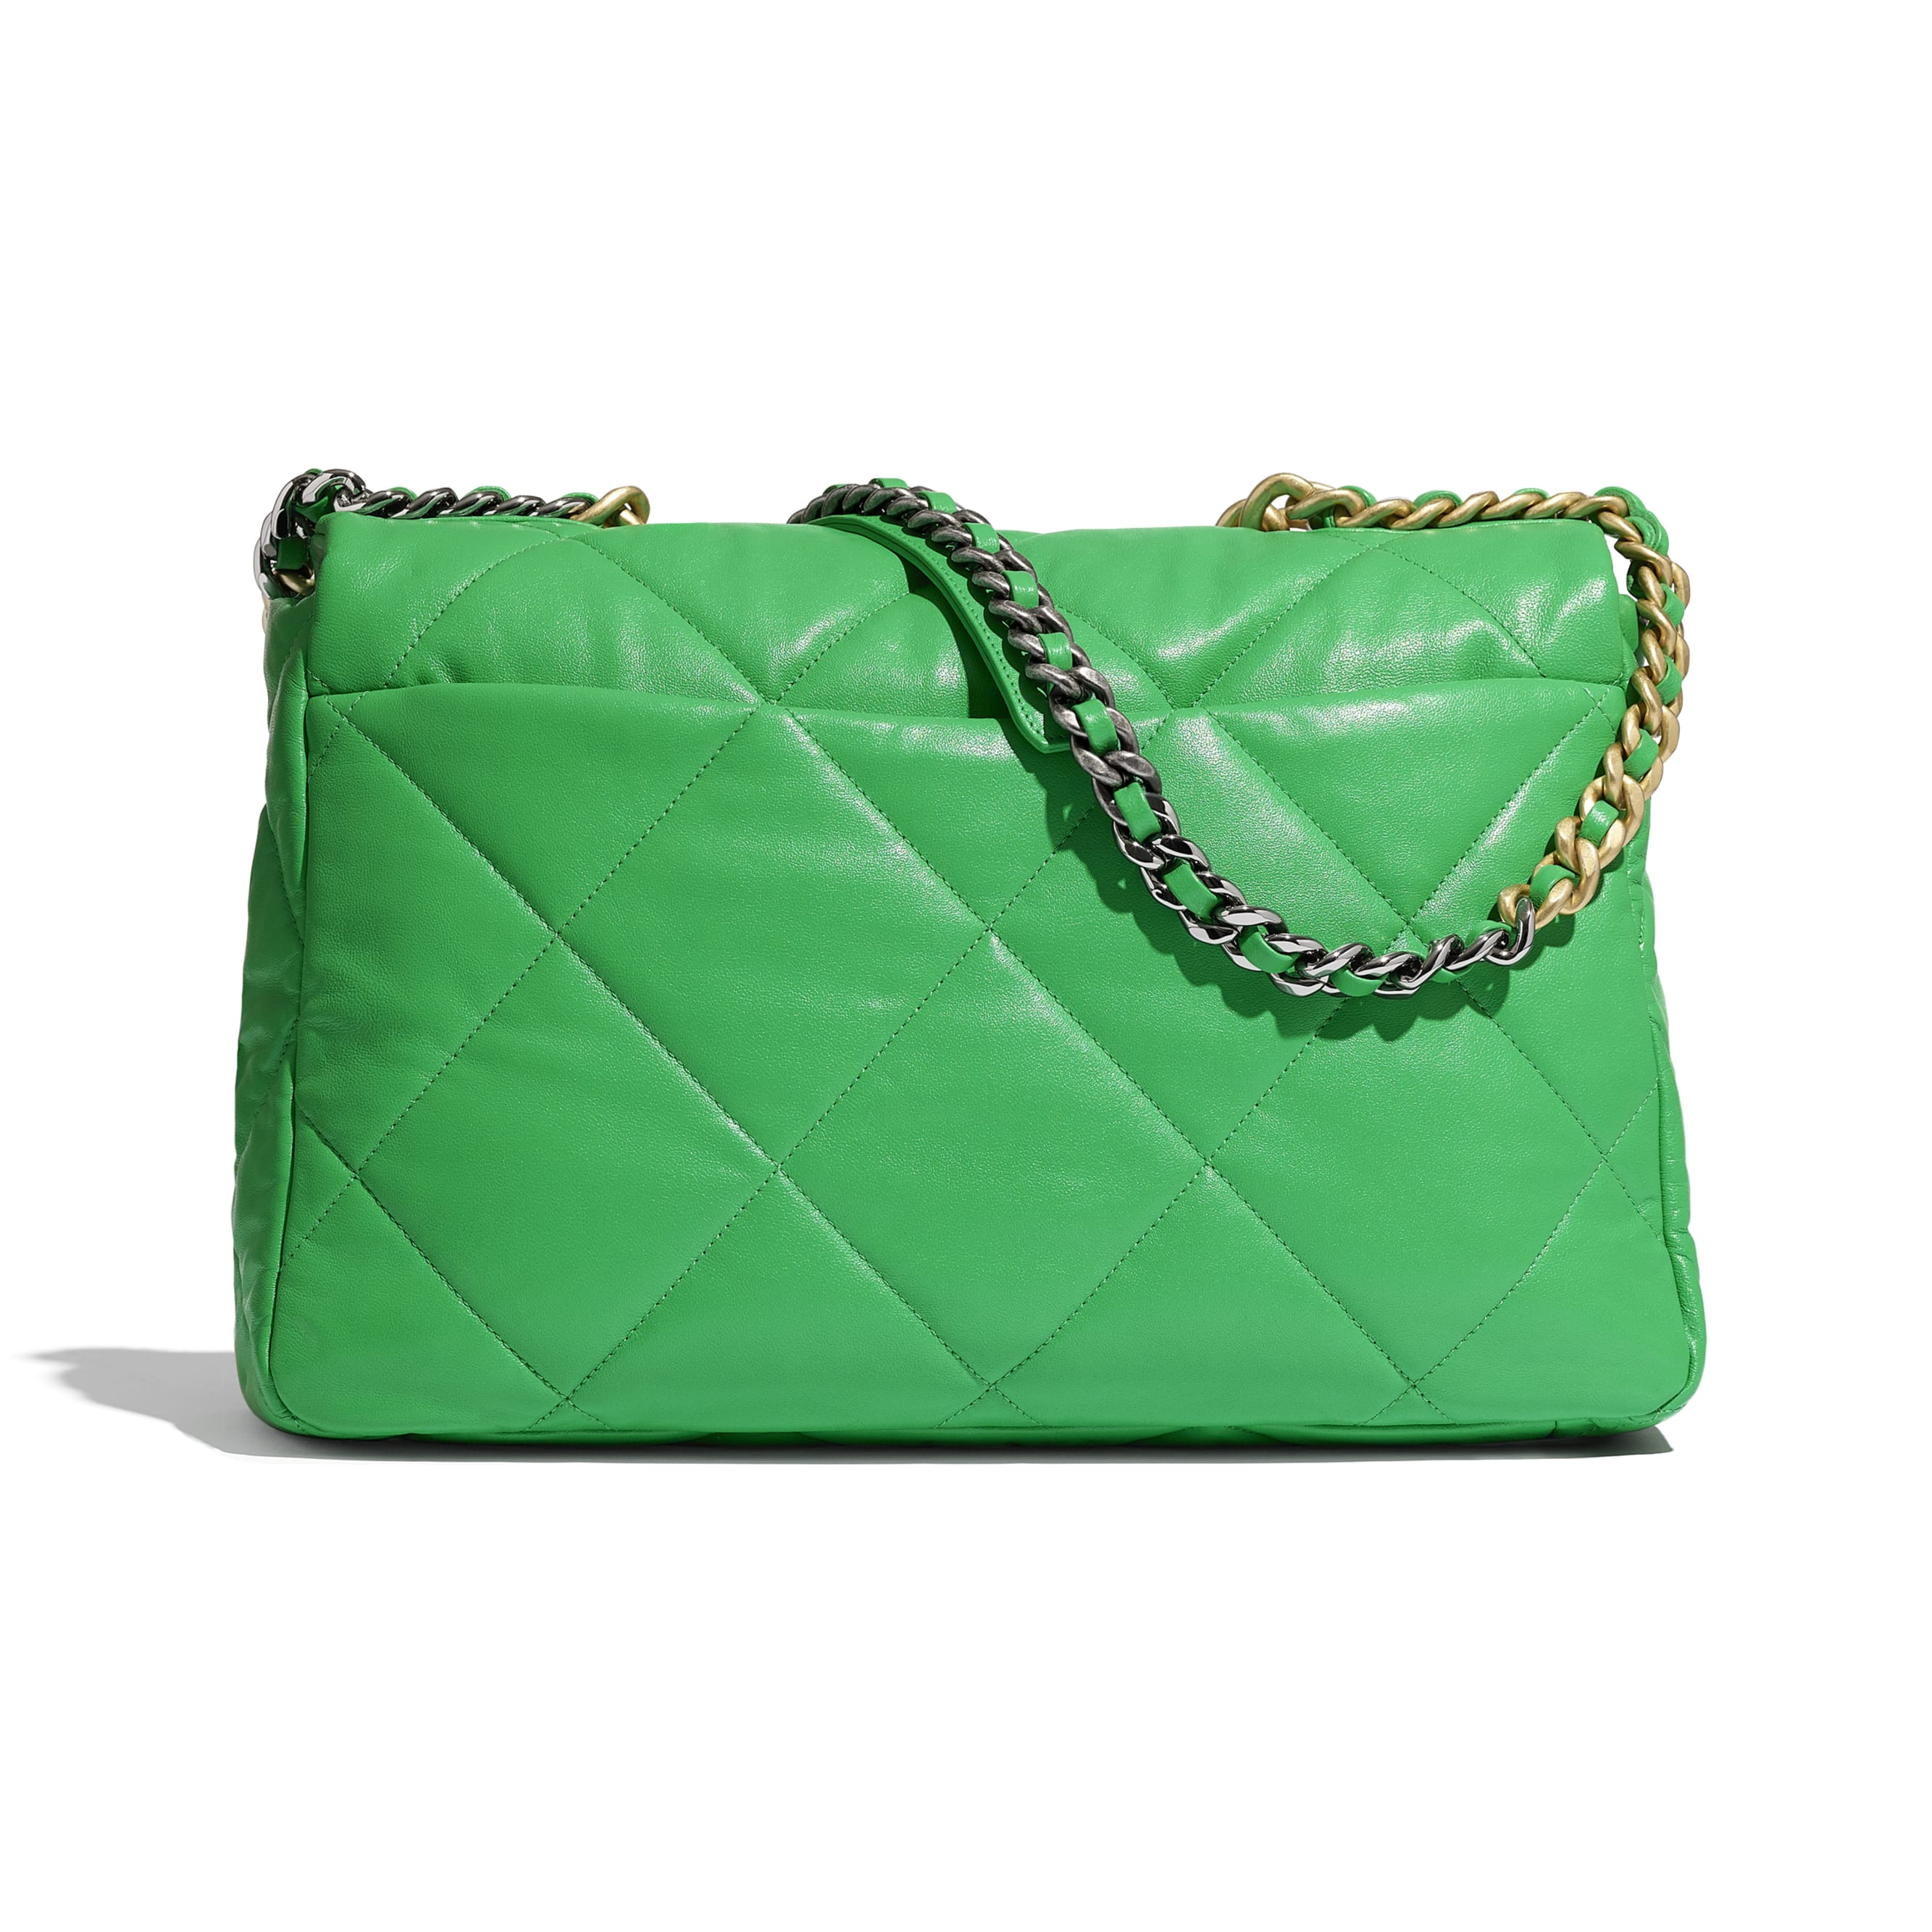 CHANEL 19 Maxi Flap Bag - Green - Lambskin, Gold-Tone, Silver-Tone & Ruthenium-Finish Metal - CHANEL - Alternative view - see standard sized version